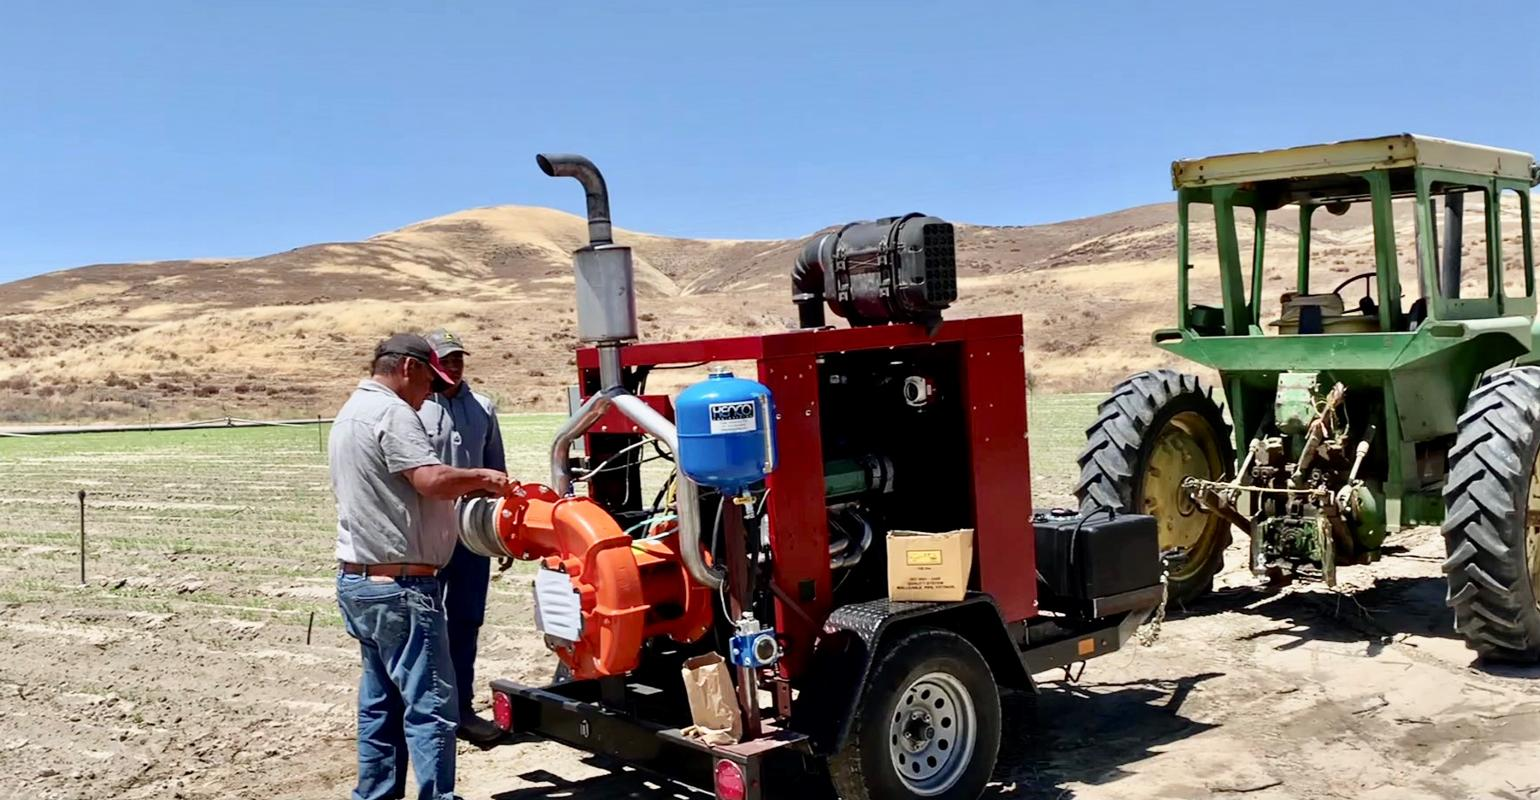 generator and pump to run an irrigation system running on 100% ethanol